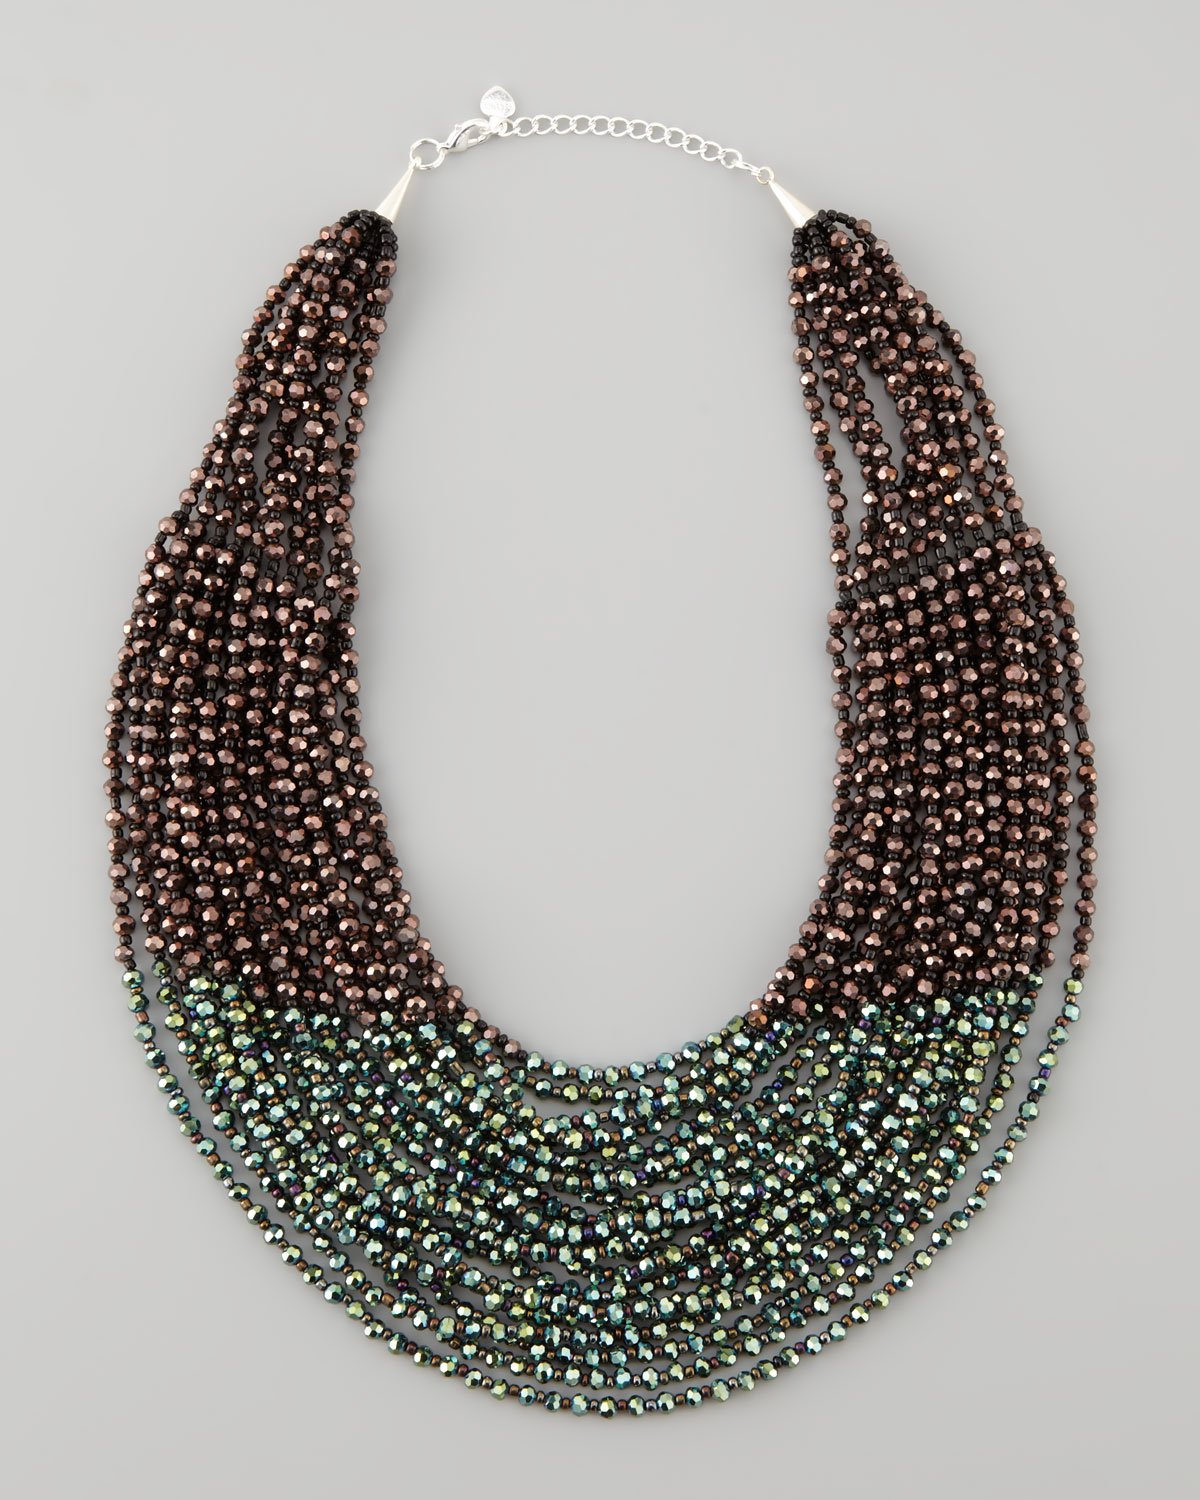 featured products fair multi beaded necklace multistrandnecklacegoldsilver trade strand mayan